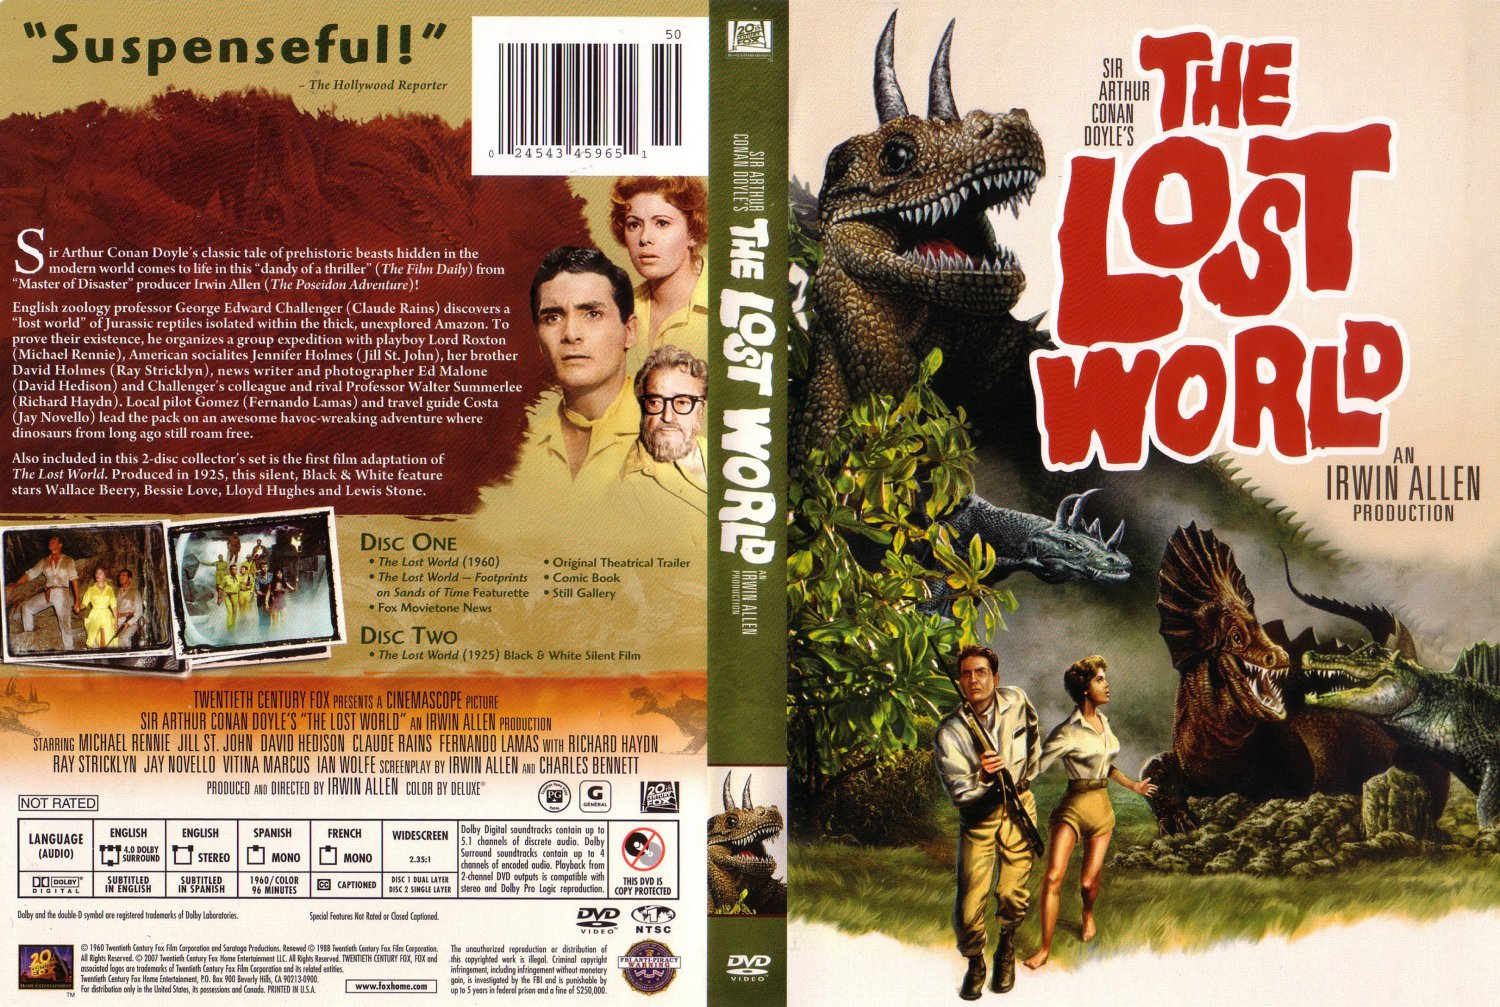 the lost world thesis A thesis statement for the lost world should focus on the theme that adventure leads to self-discovery a thesis statement is the focus for an essay.